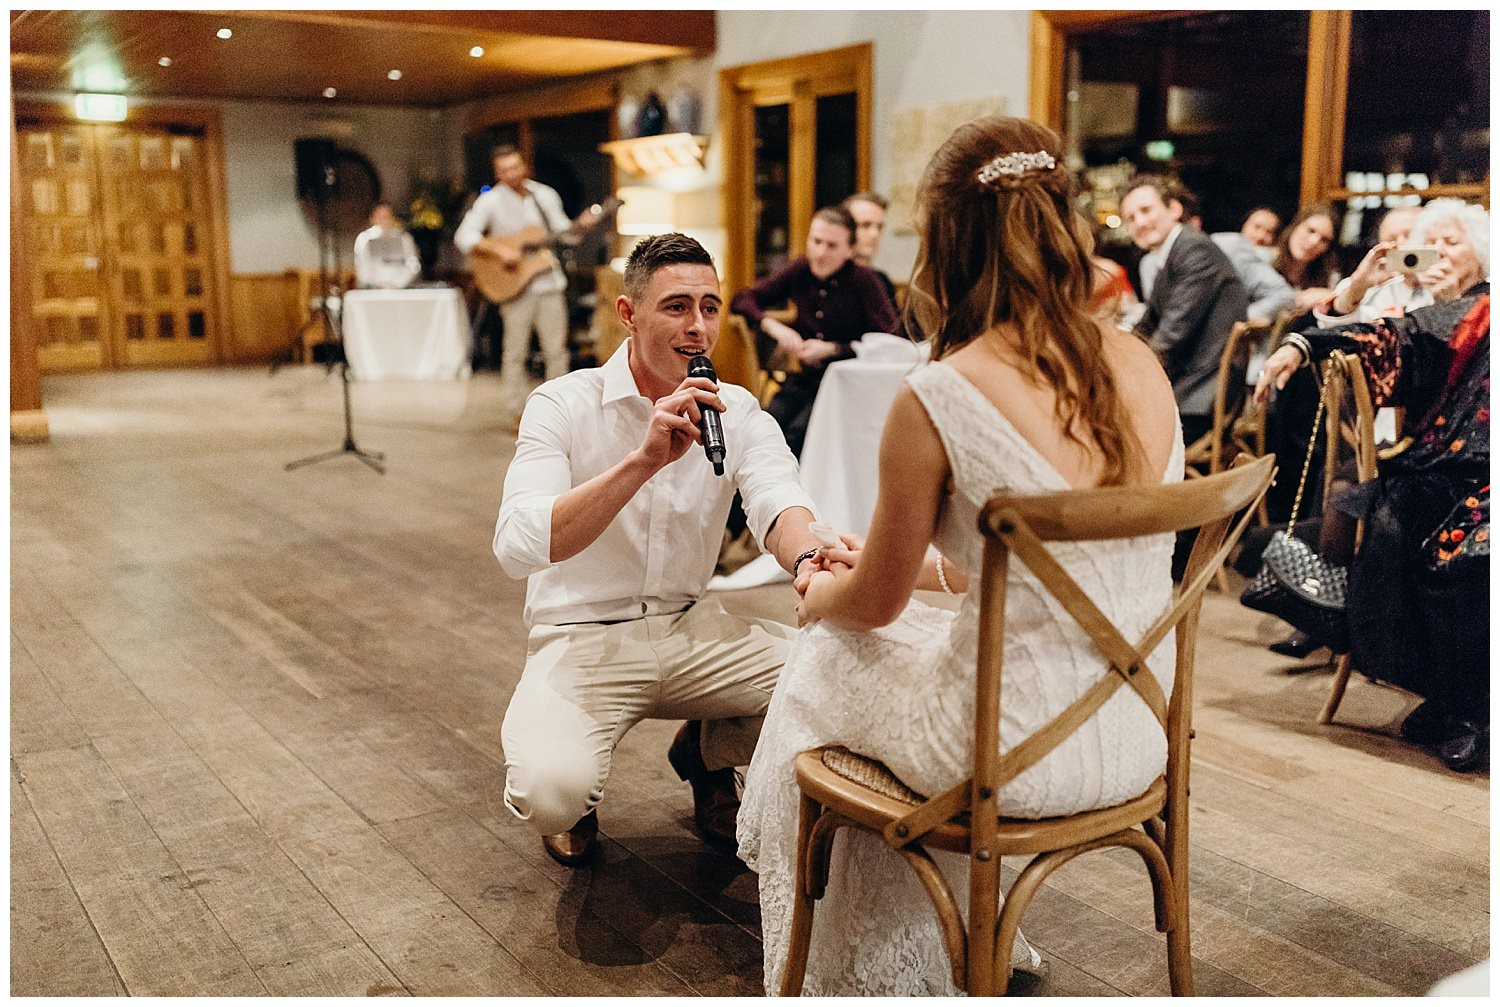 Bowral Southern Highlands Autumn Wedding - Groom singing for bride at Centennial Vineyards Reception